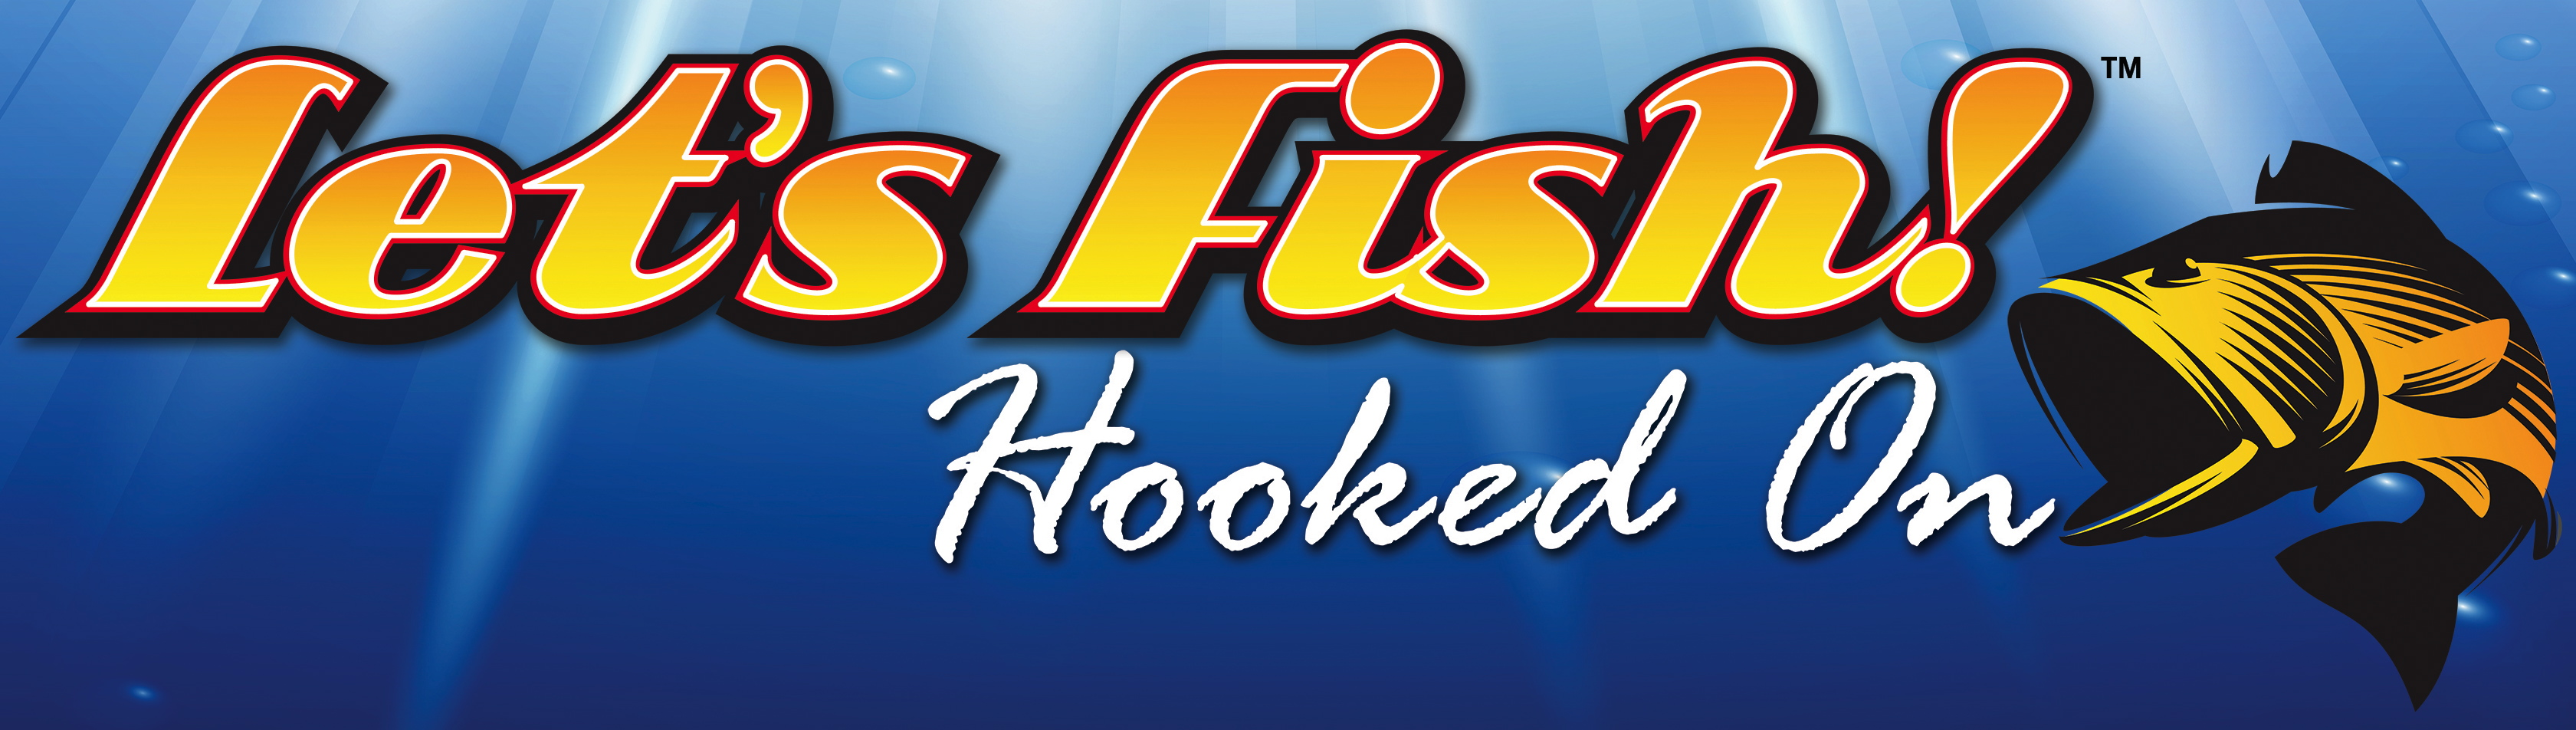 Let's Fish! Hooked On icon